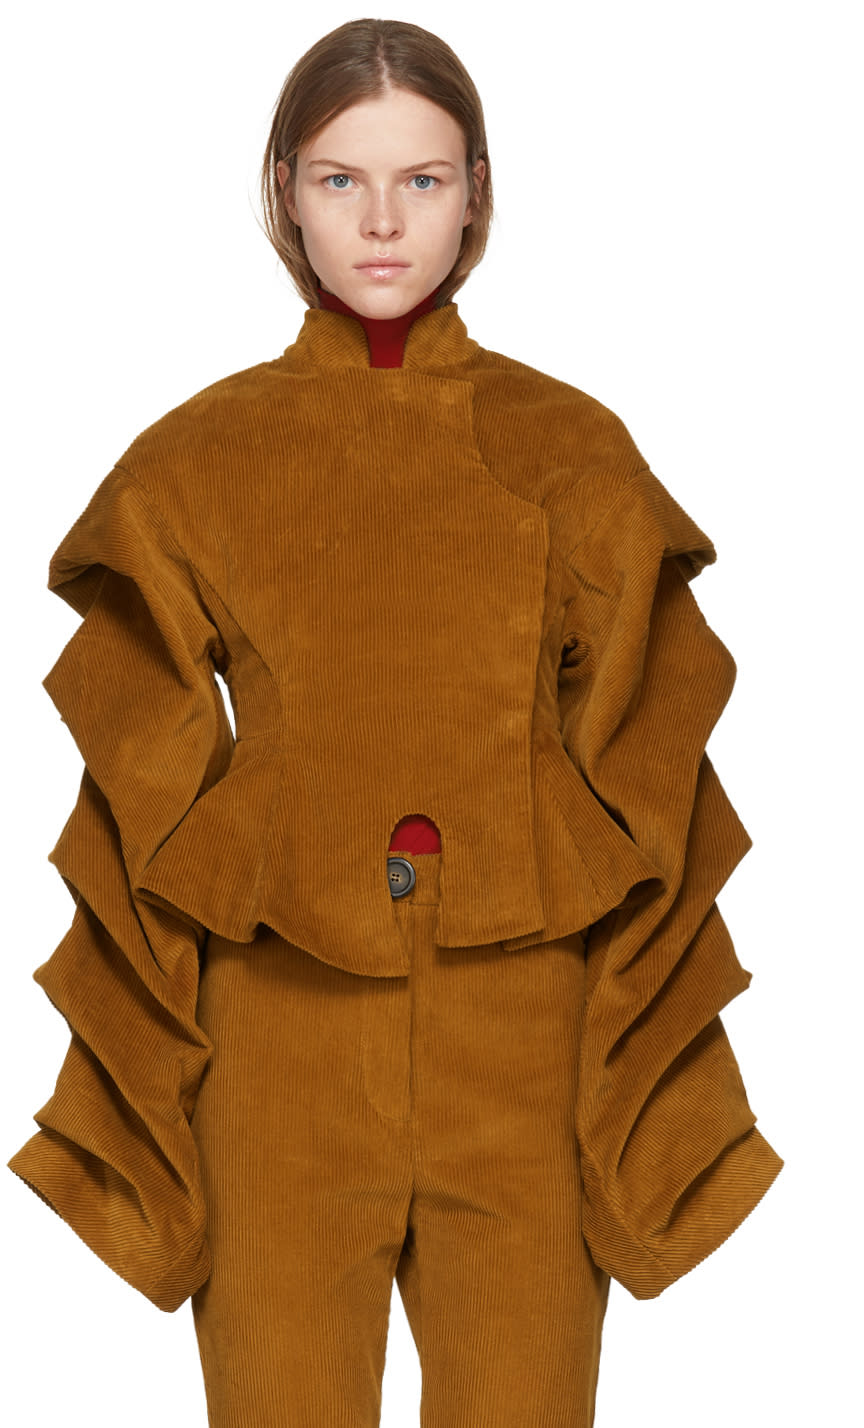 Image of A.w.a.k.e. Tan Corduroy octopus Dressed As Don Quixote Jacket